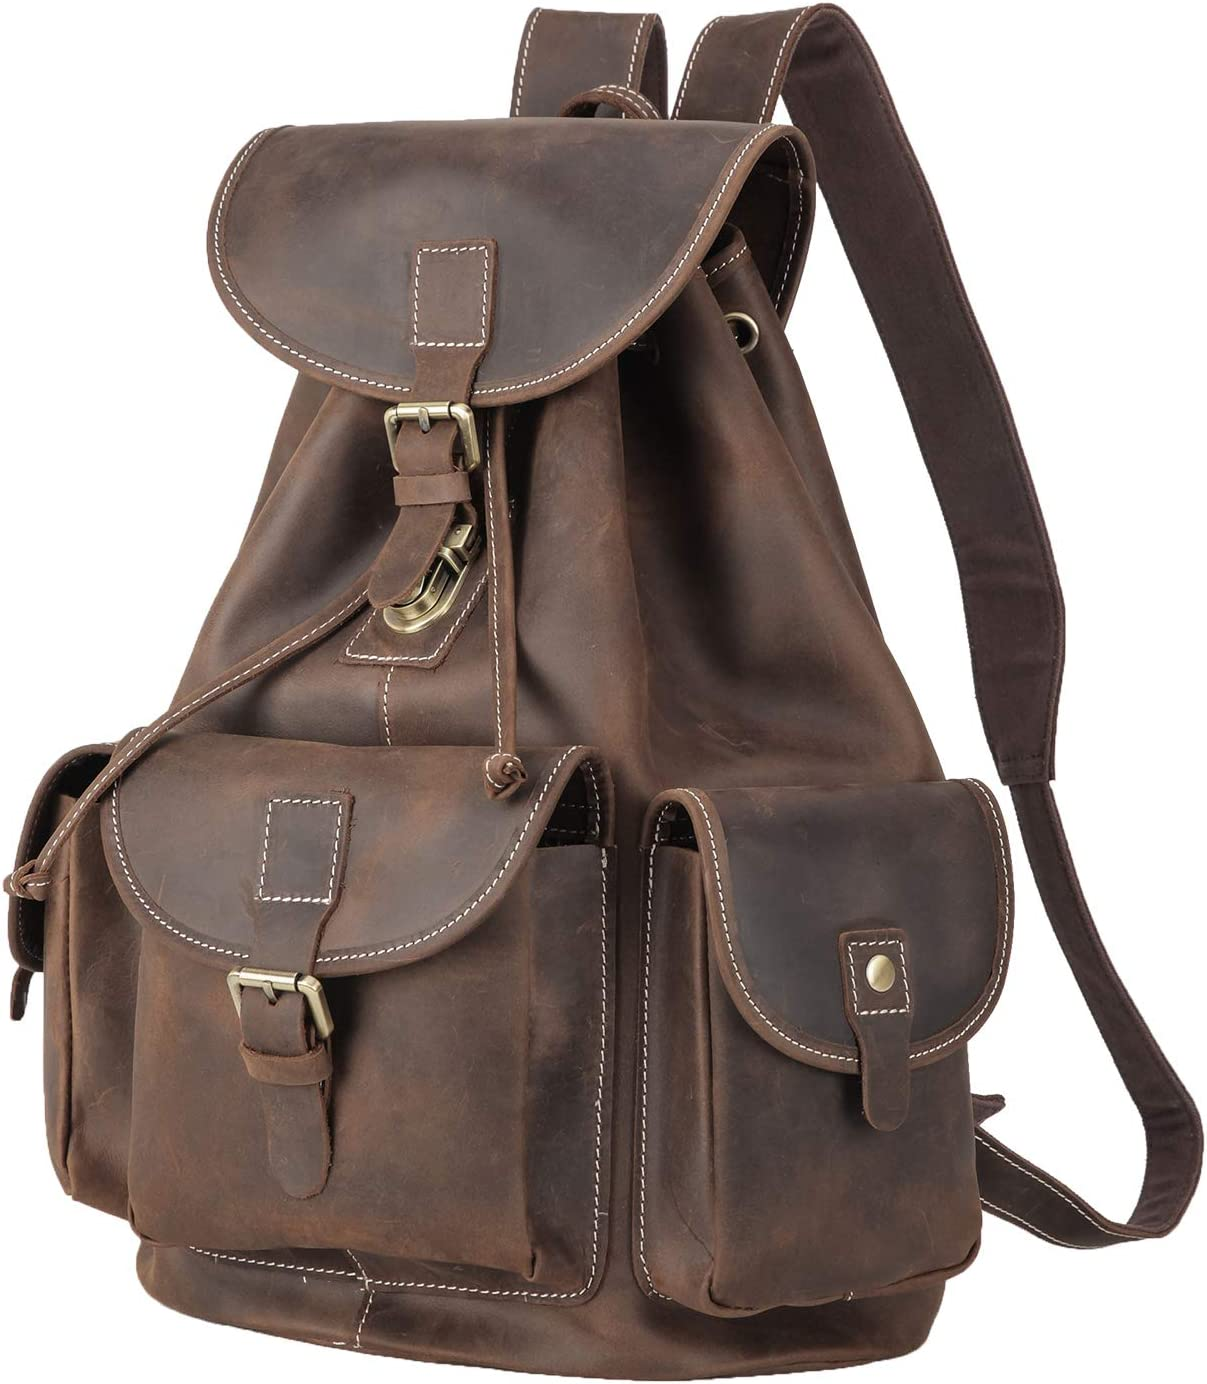 Polare Full Grain Leather Backpack Vintage College Laptop Bag with YKK Metal Zipper